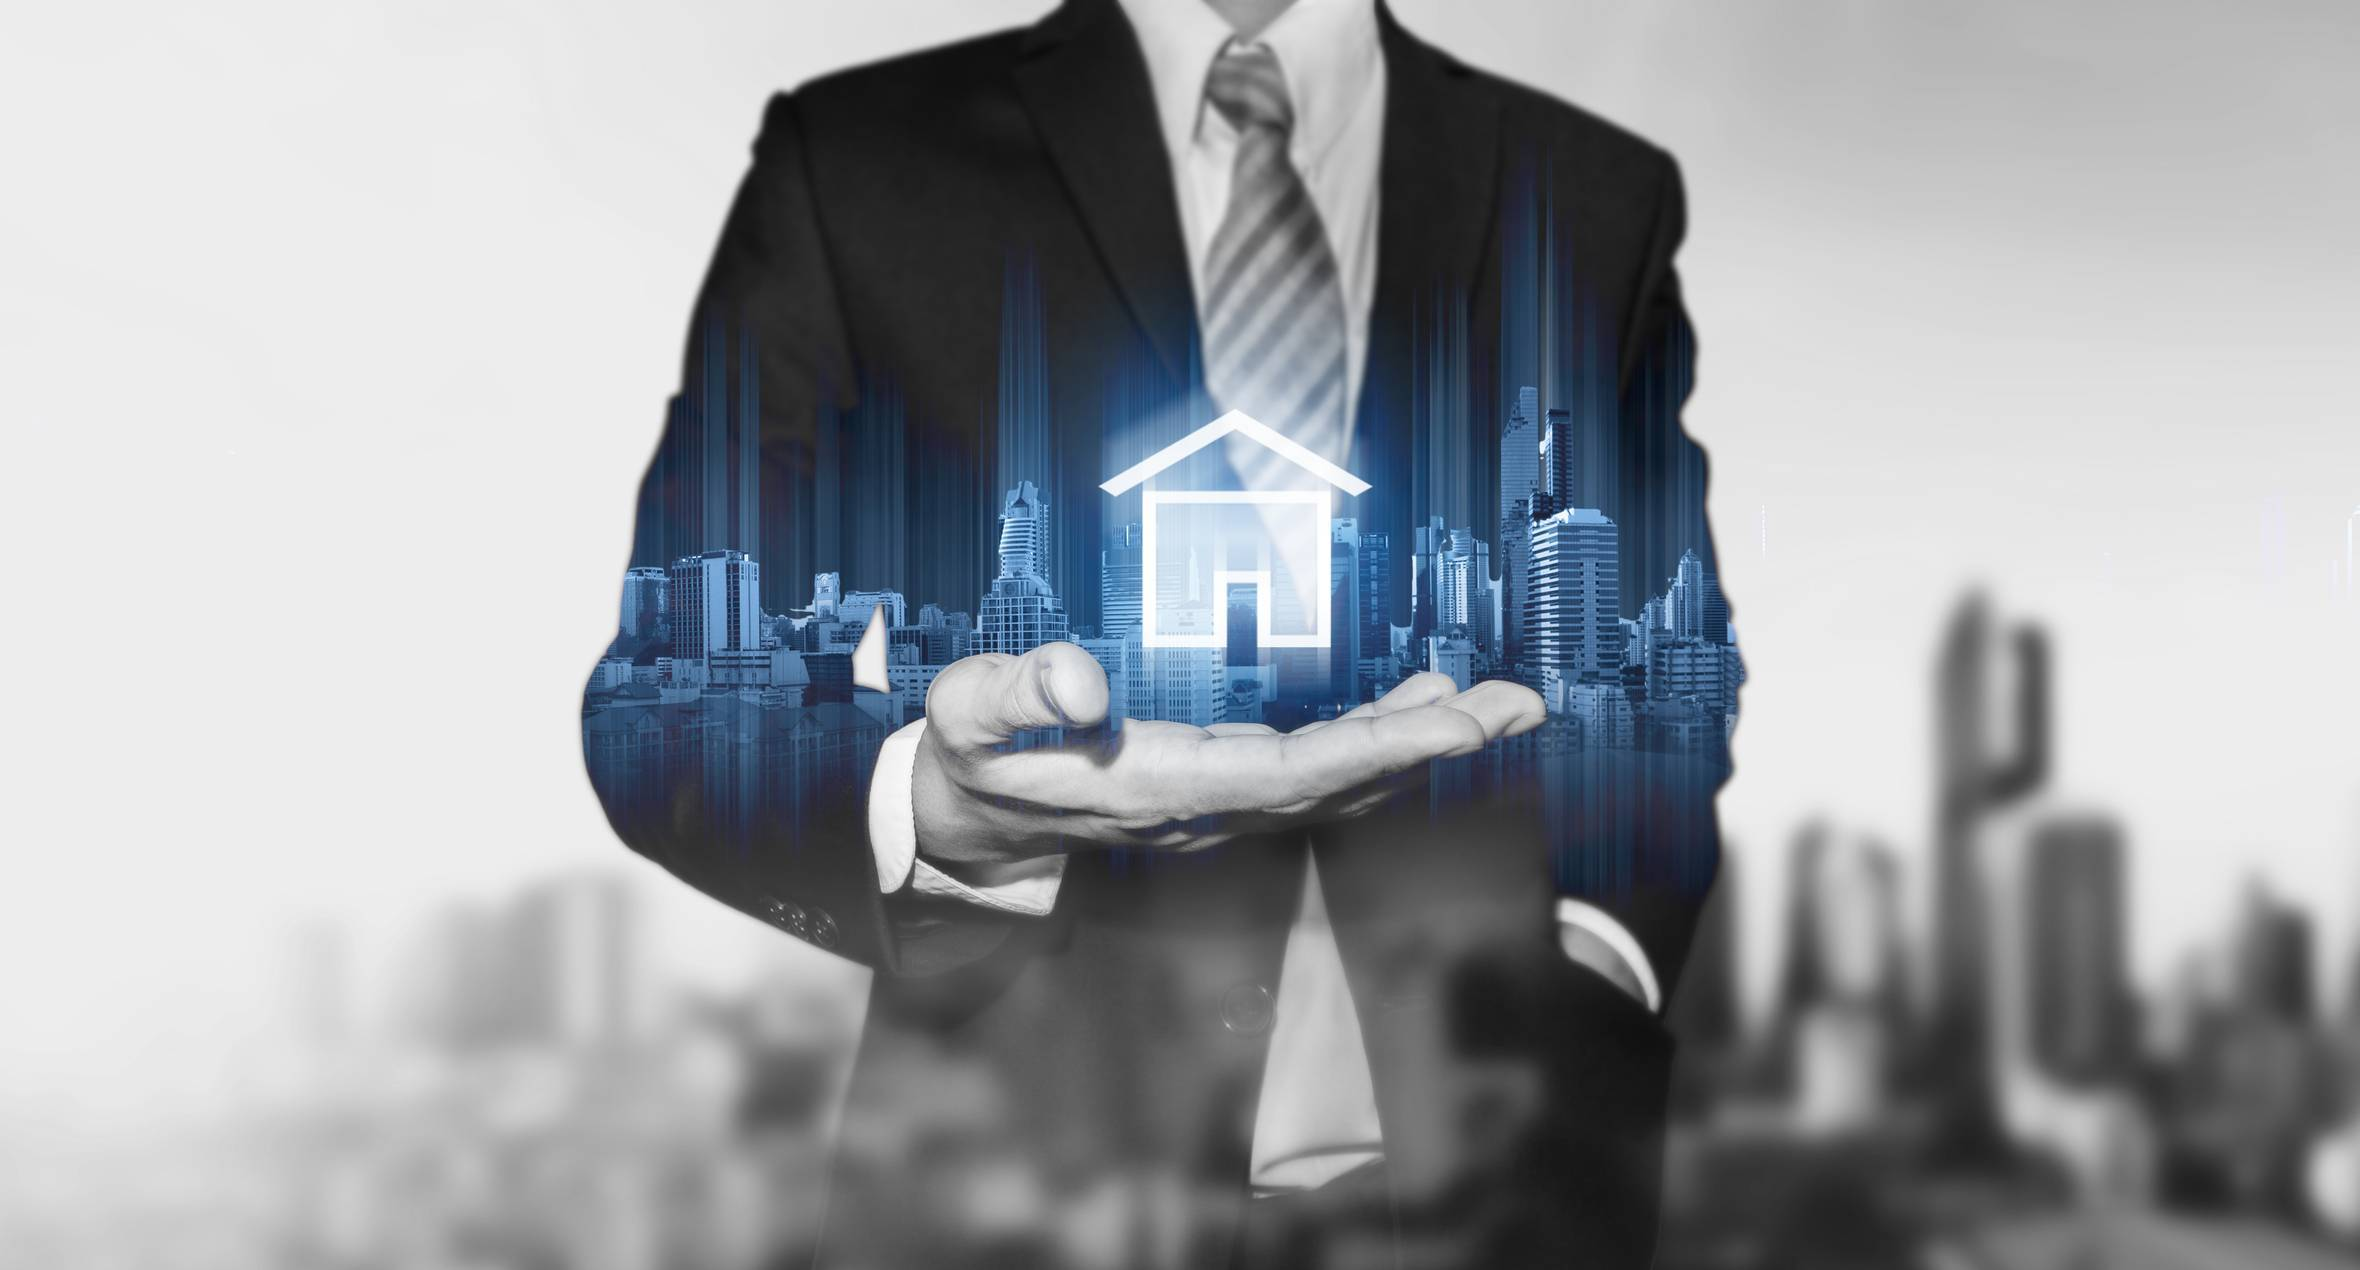 immobilier, local commercial